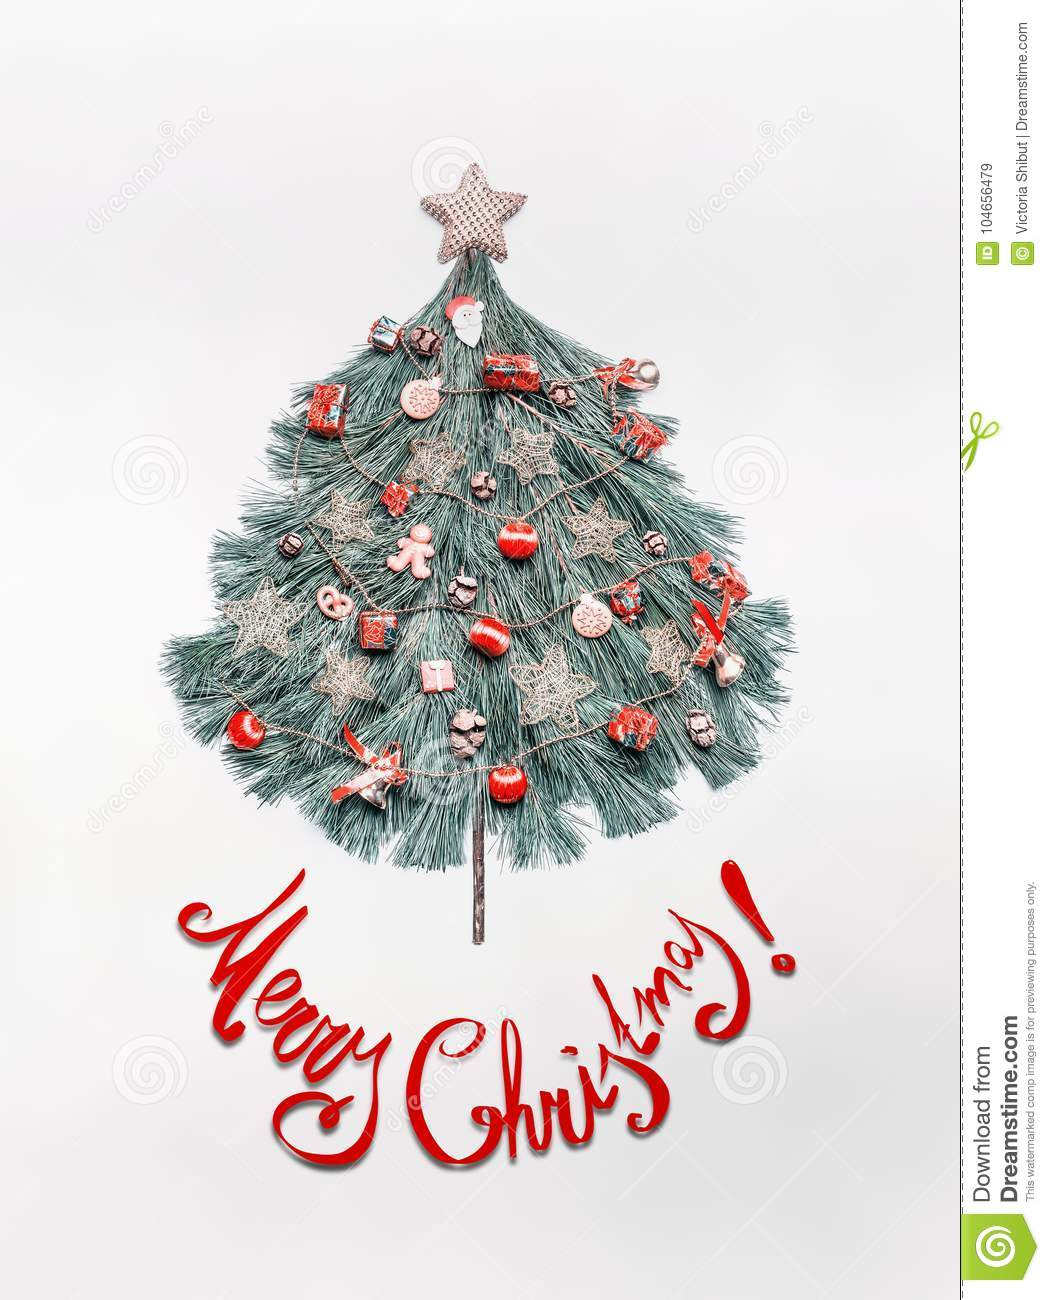 Merry Christmas card with lettering, tree made with fir branches, decorated with star and red festive decorations , holidays cooki